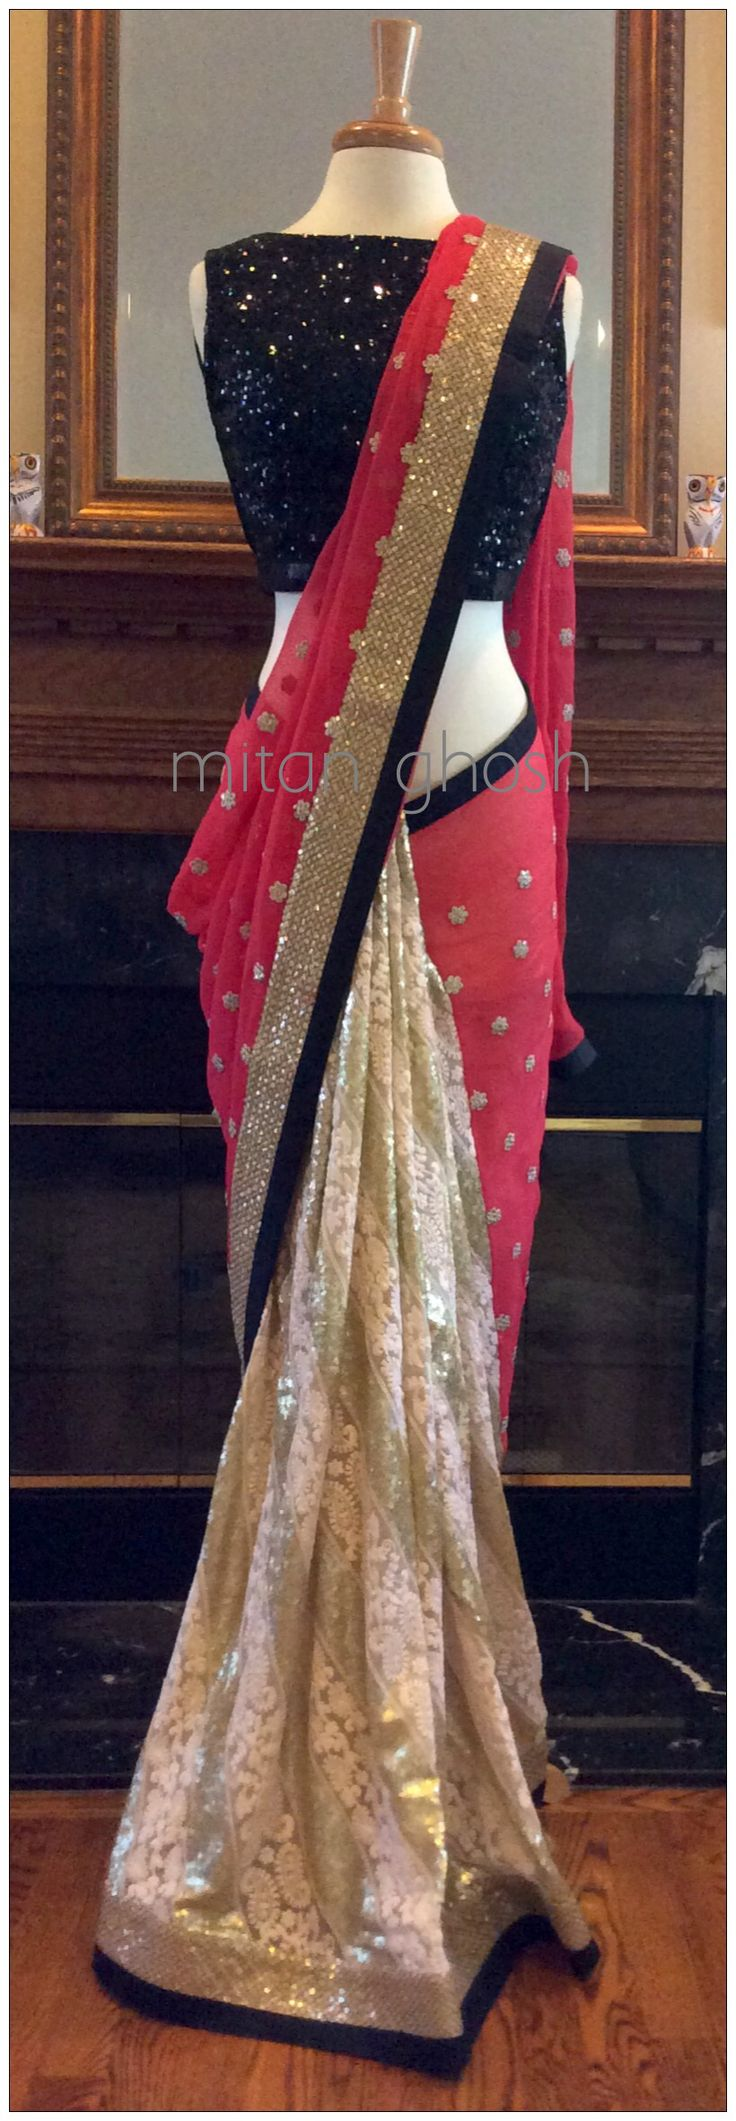 Beautiful, multi-color #Saree by @mitanghosh https://www.facebook.com/mitan.ghoshrc Grt NYC